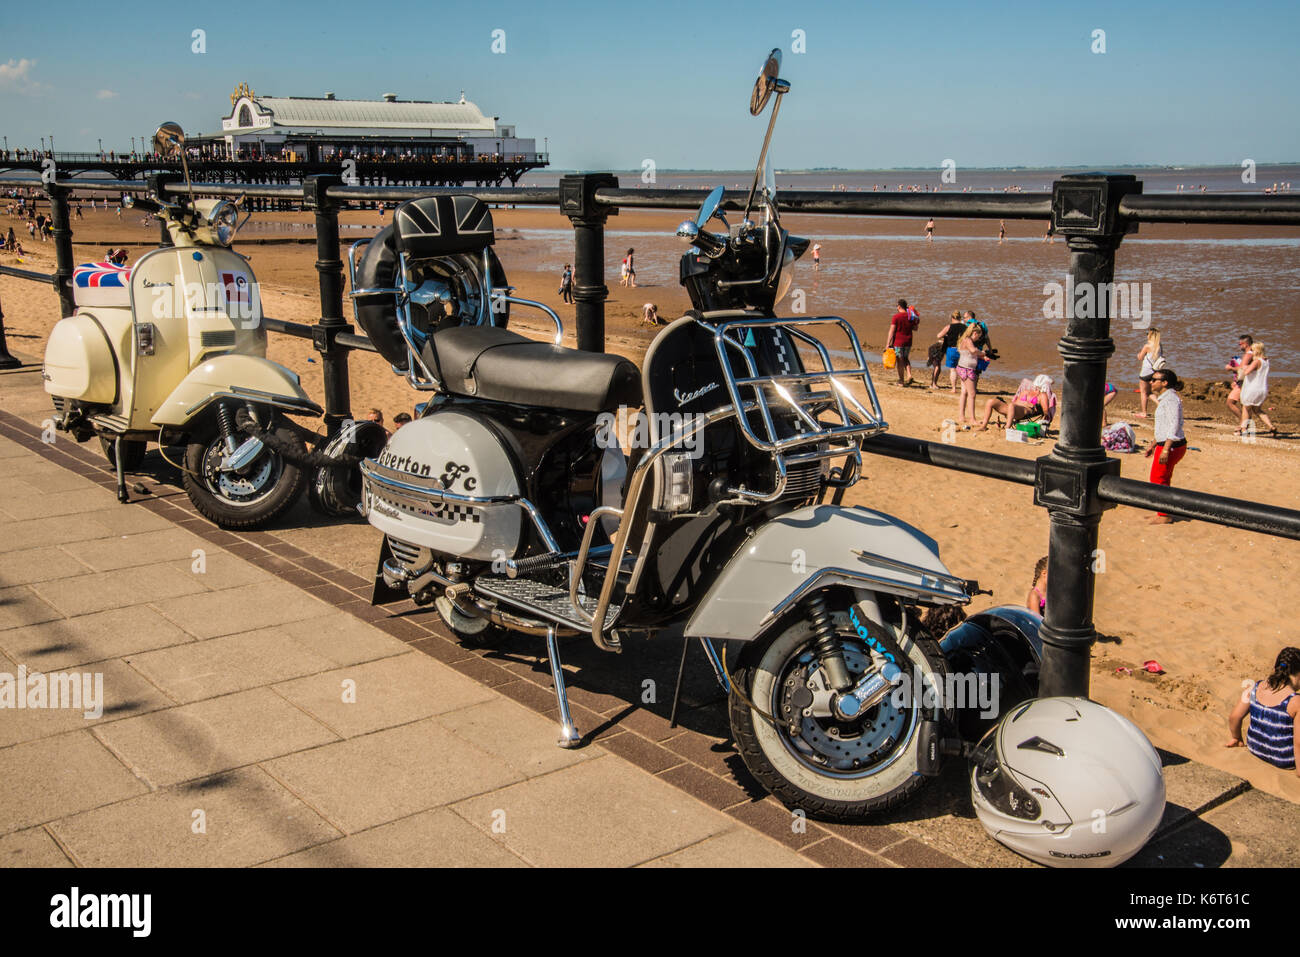 the old Vespa Scooter parked Cleethorpes  England Ray Boswell - Stock Image